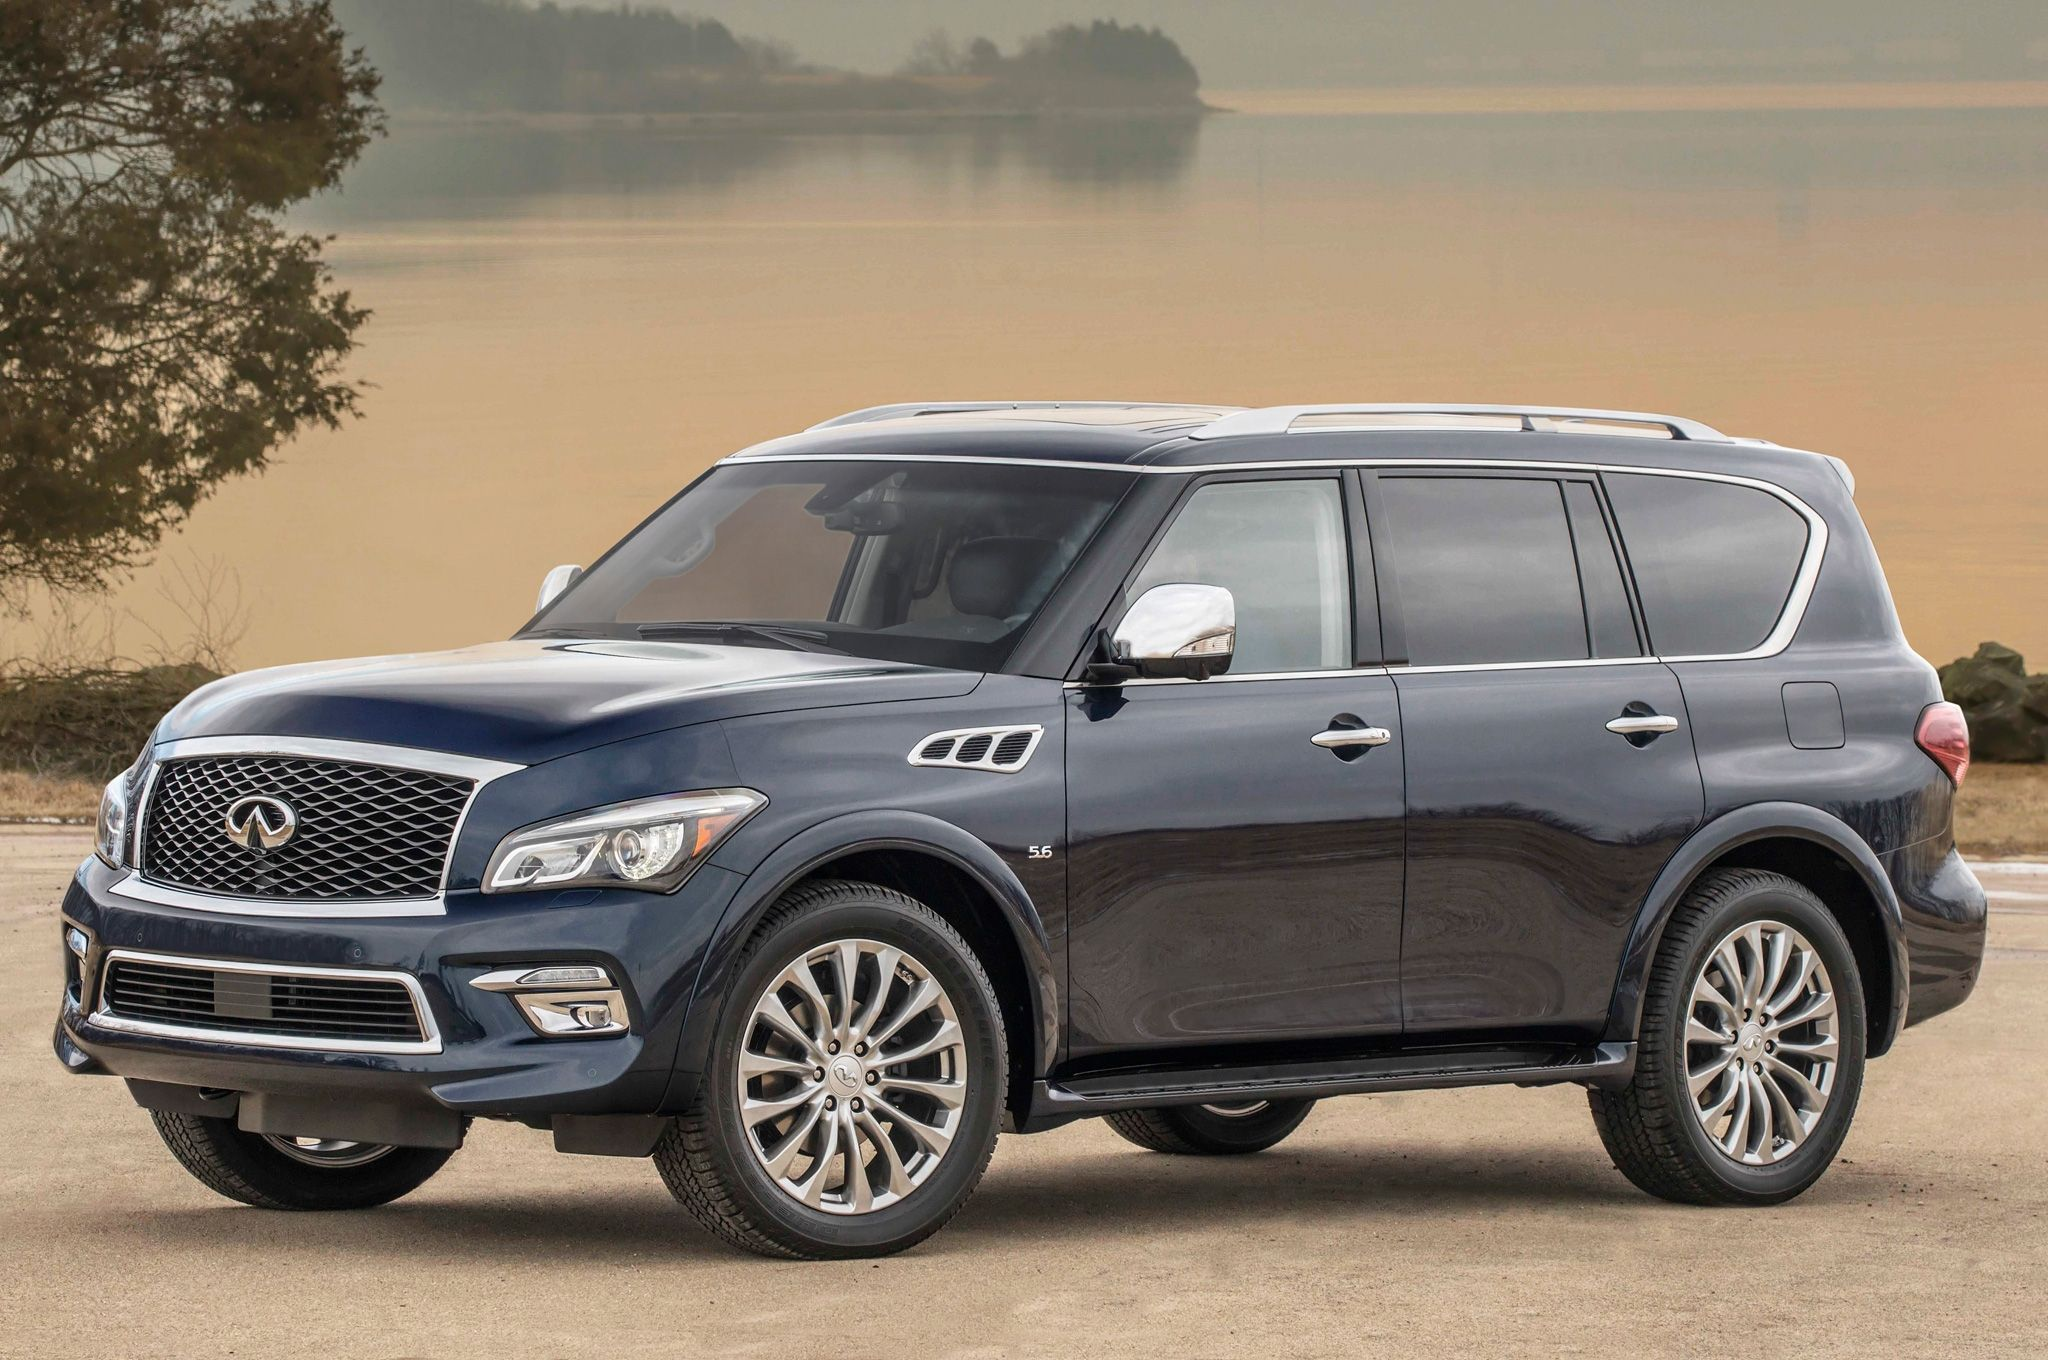 2015-Infiniti-QX80-front-side-view-2